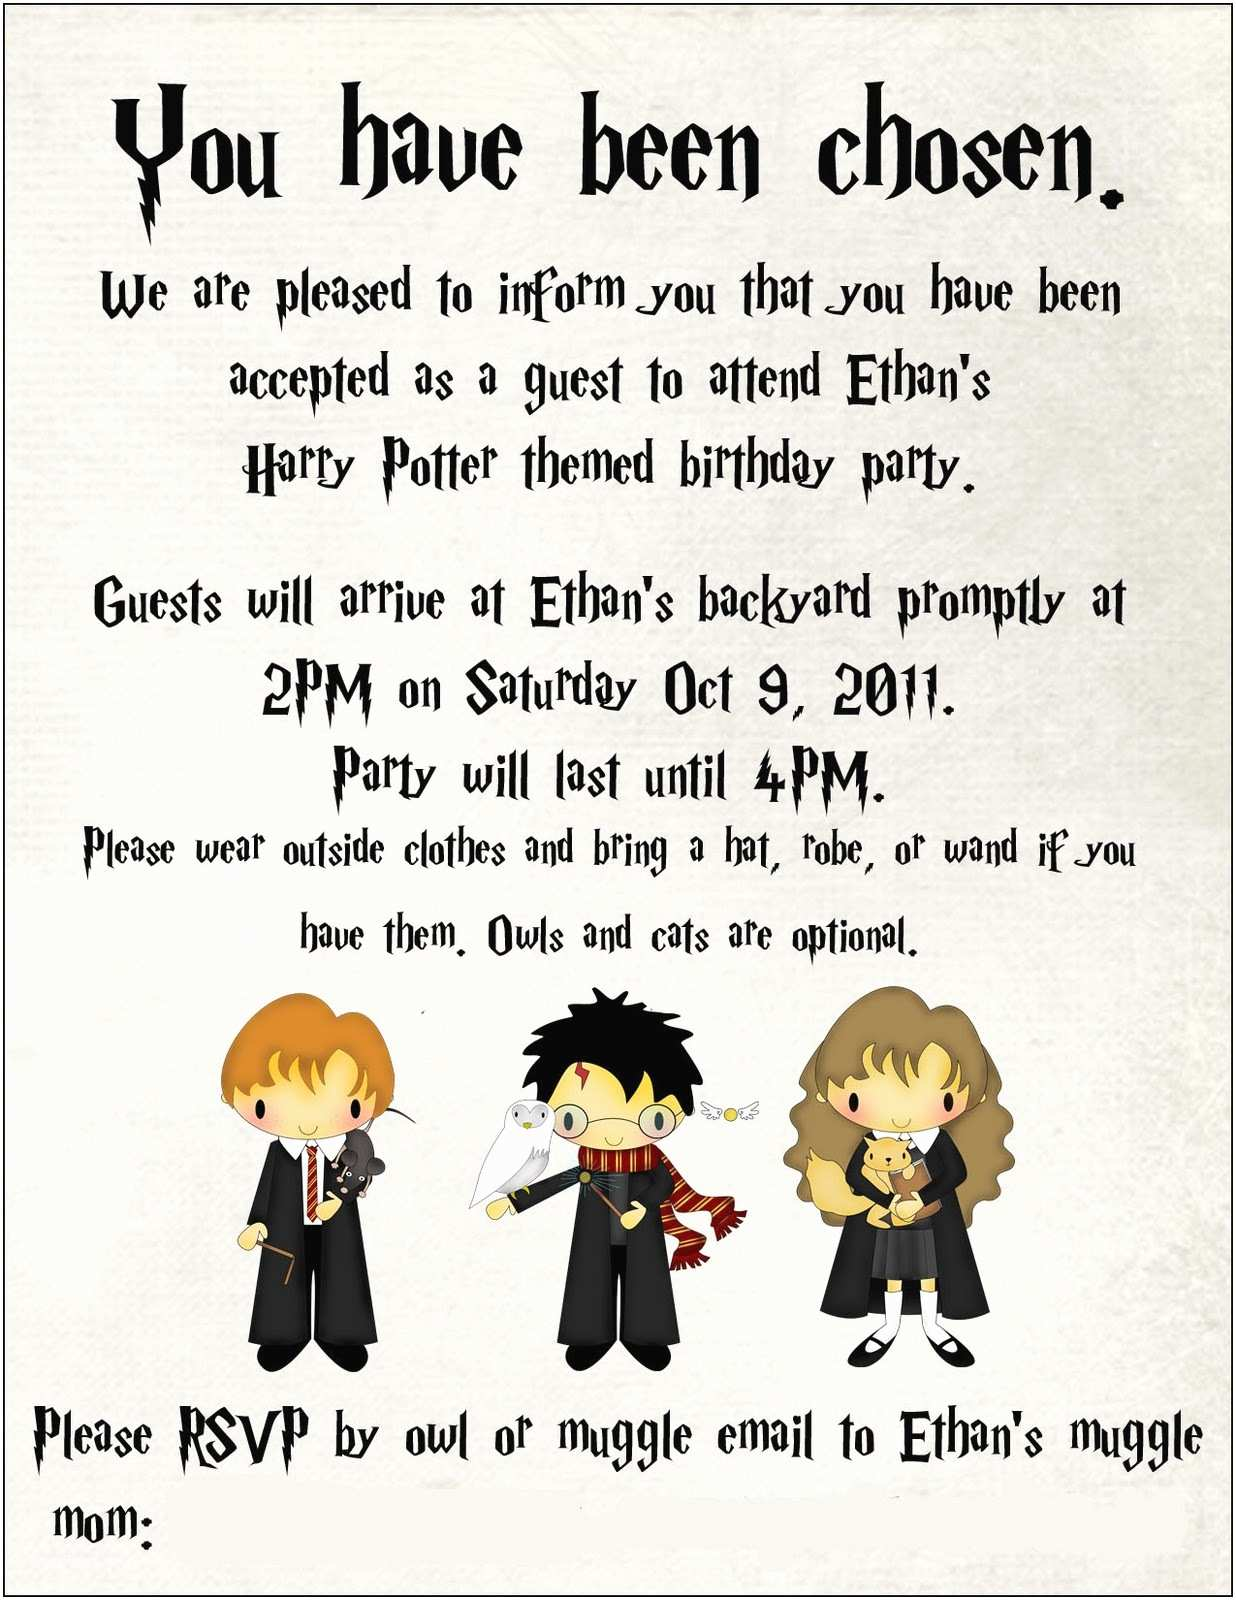 Harry Potter Birthday Party Invitations toad S Treasures Lifestyle Family Blog by Emily ashby